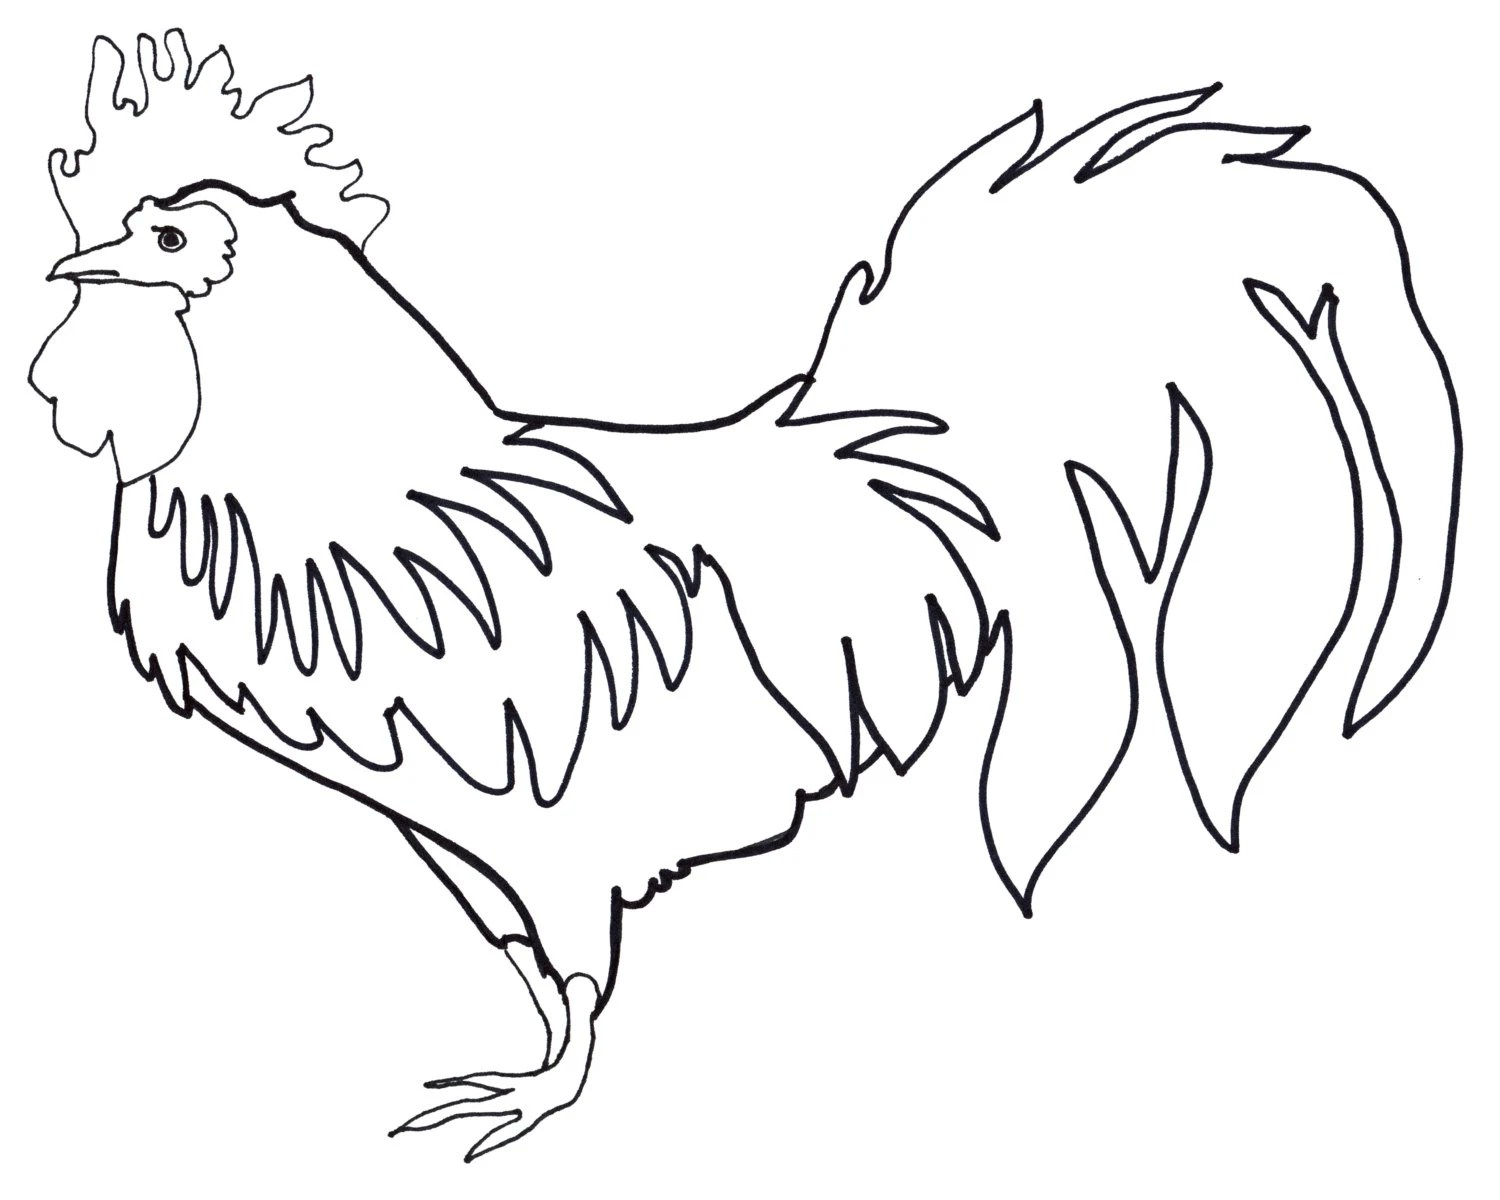 Coloring Page: Rooster Adult and Children 8x10 by